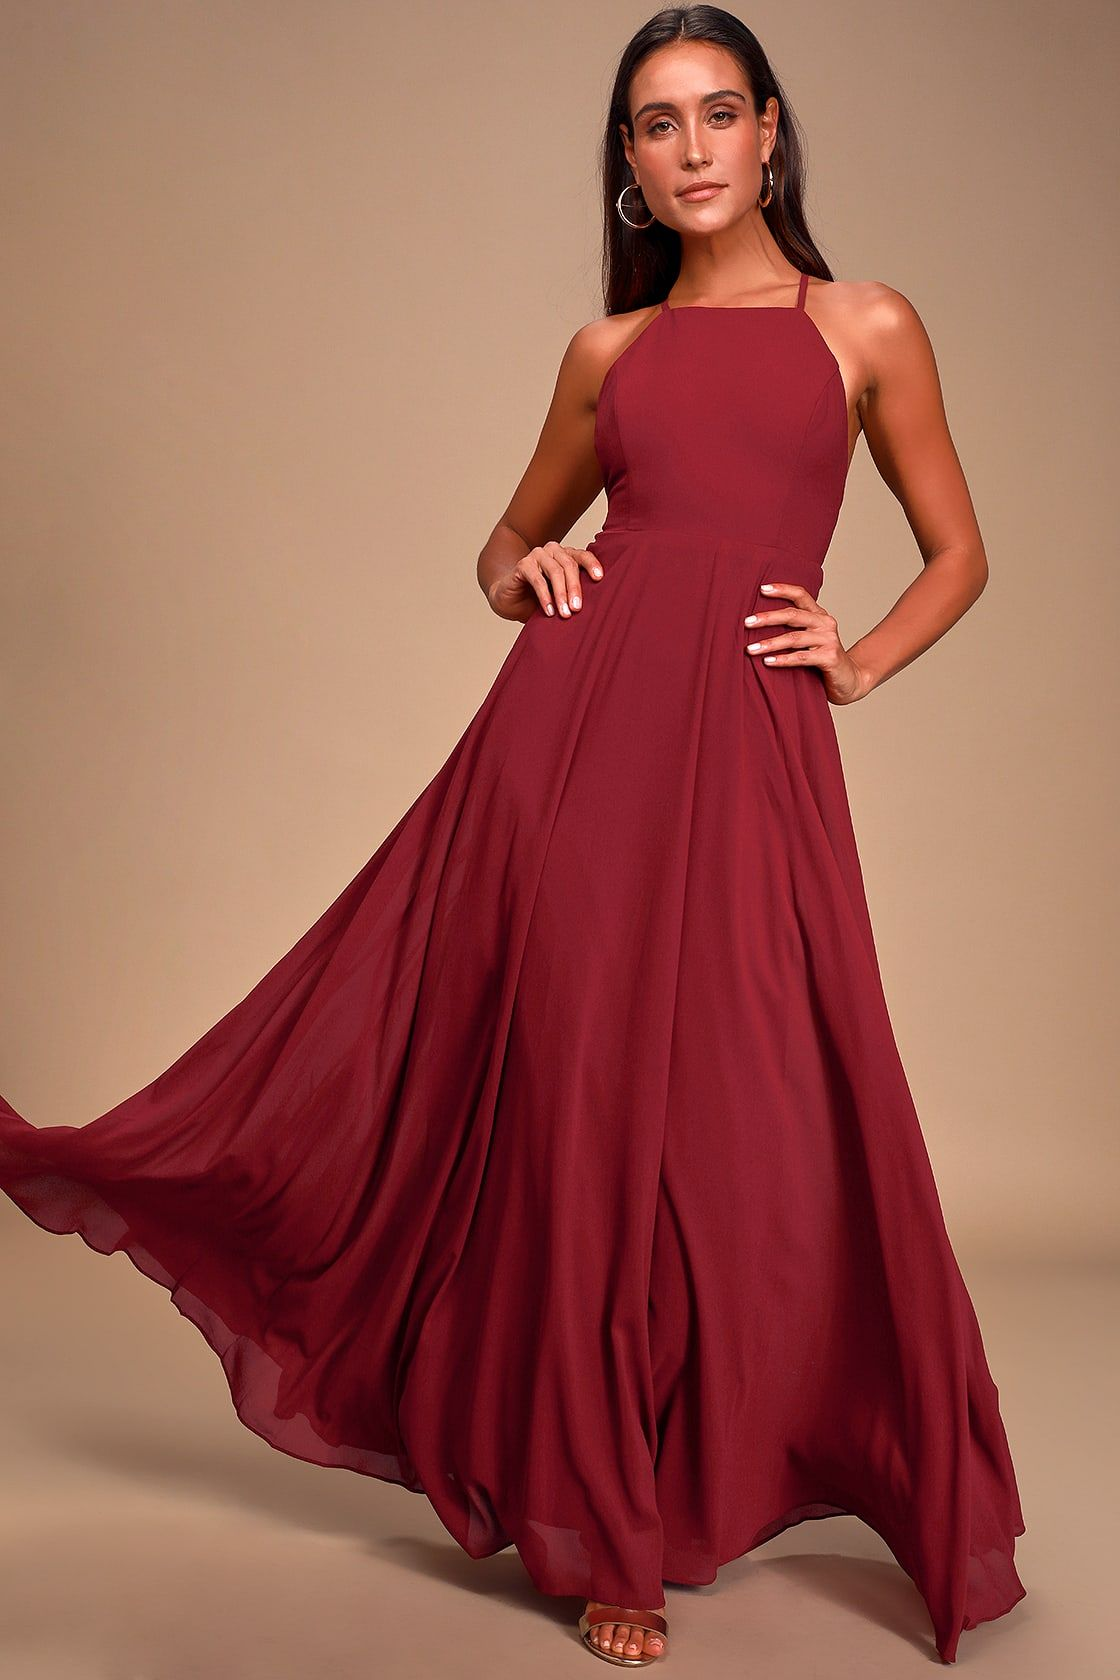 Mythical Kind Of Love Wine Red Maxi Dress In 2020 Red Dress Maxi Burgundy Maxi Dress White Lace Maxi Dress